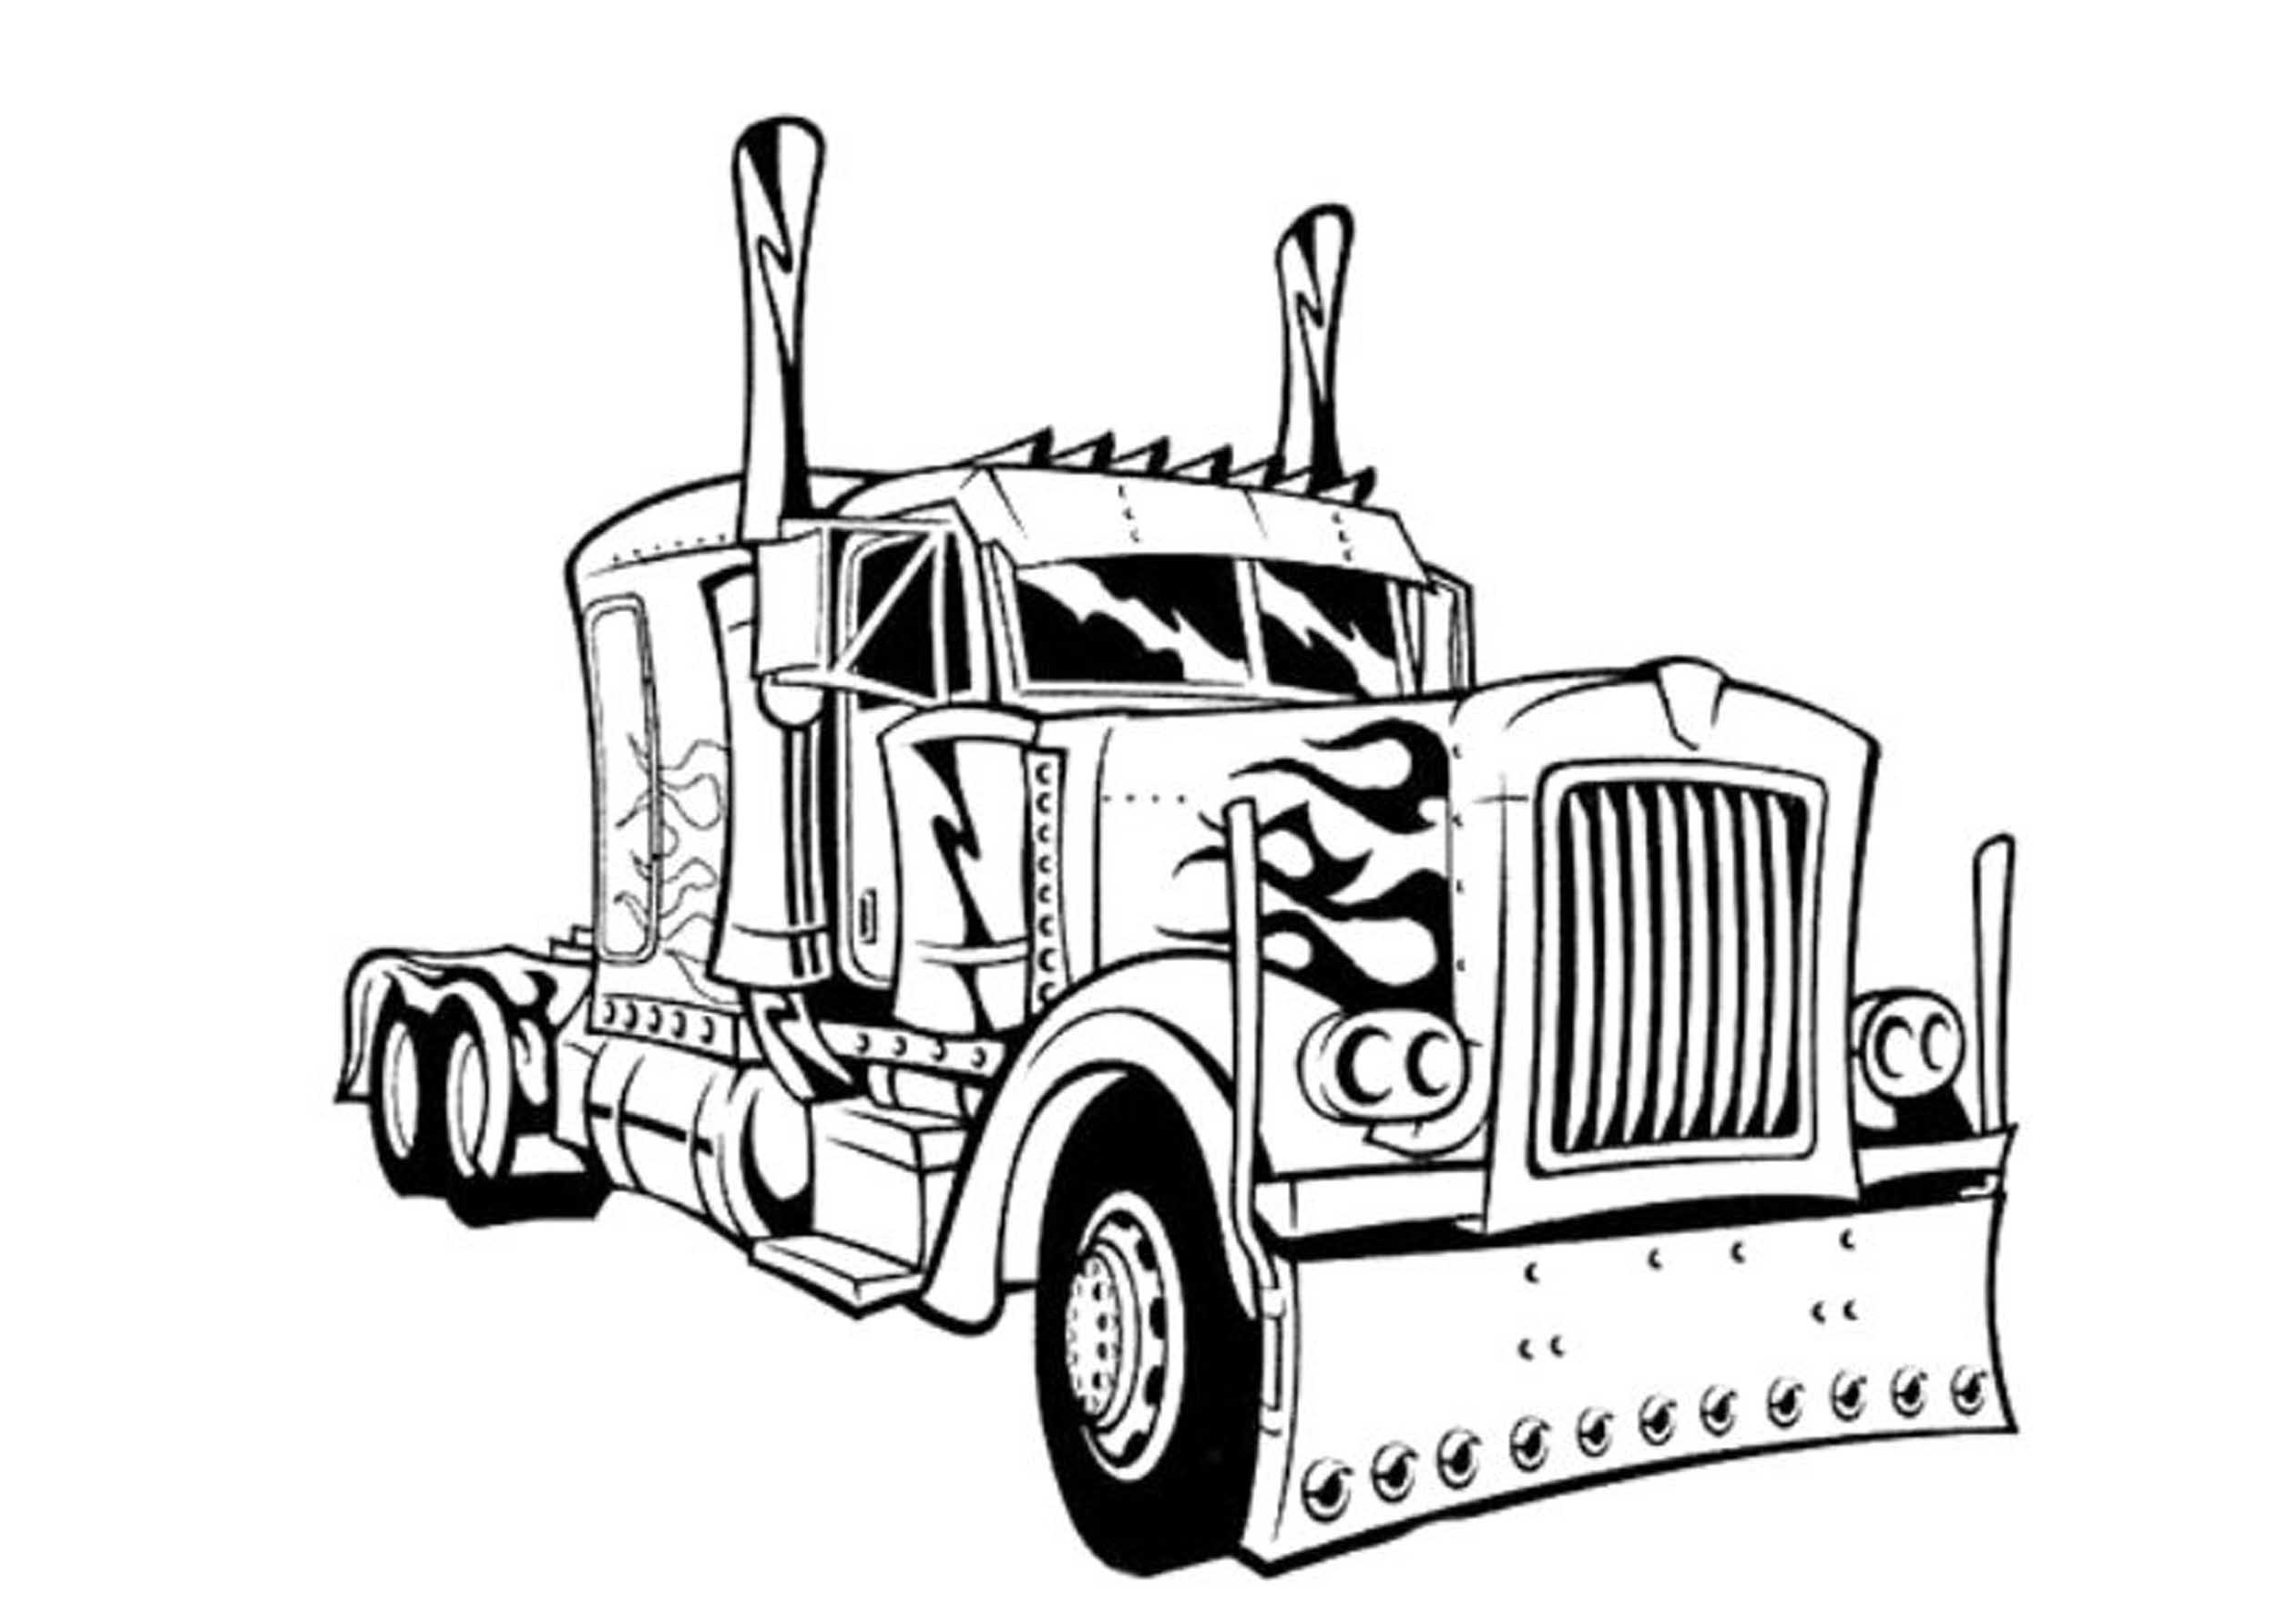 Coloring pages printable transformers